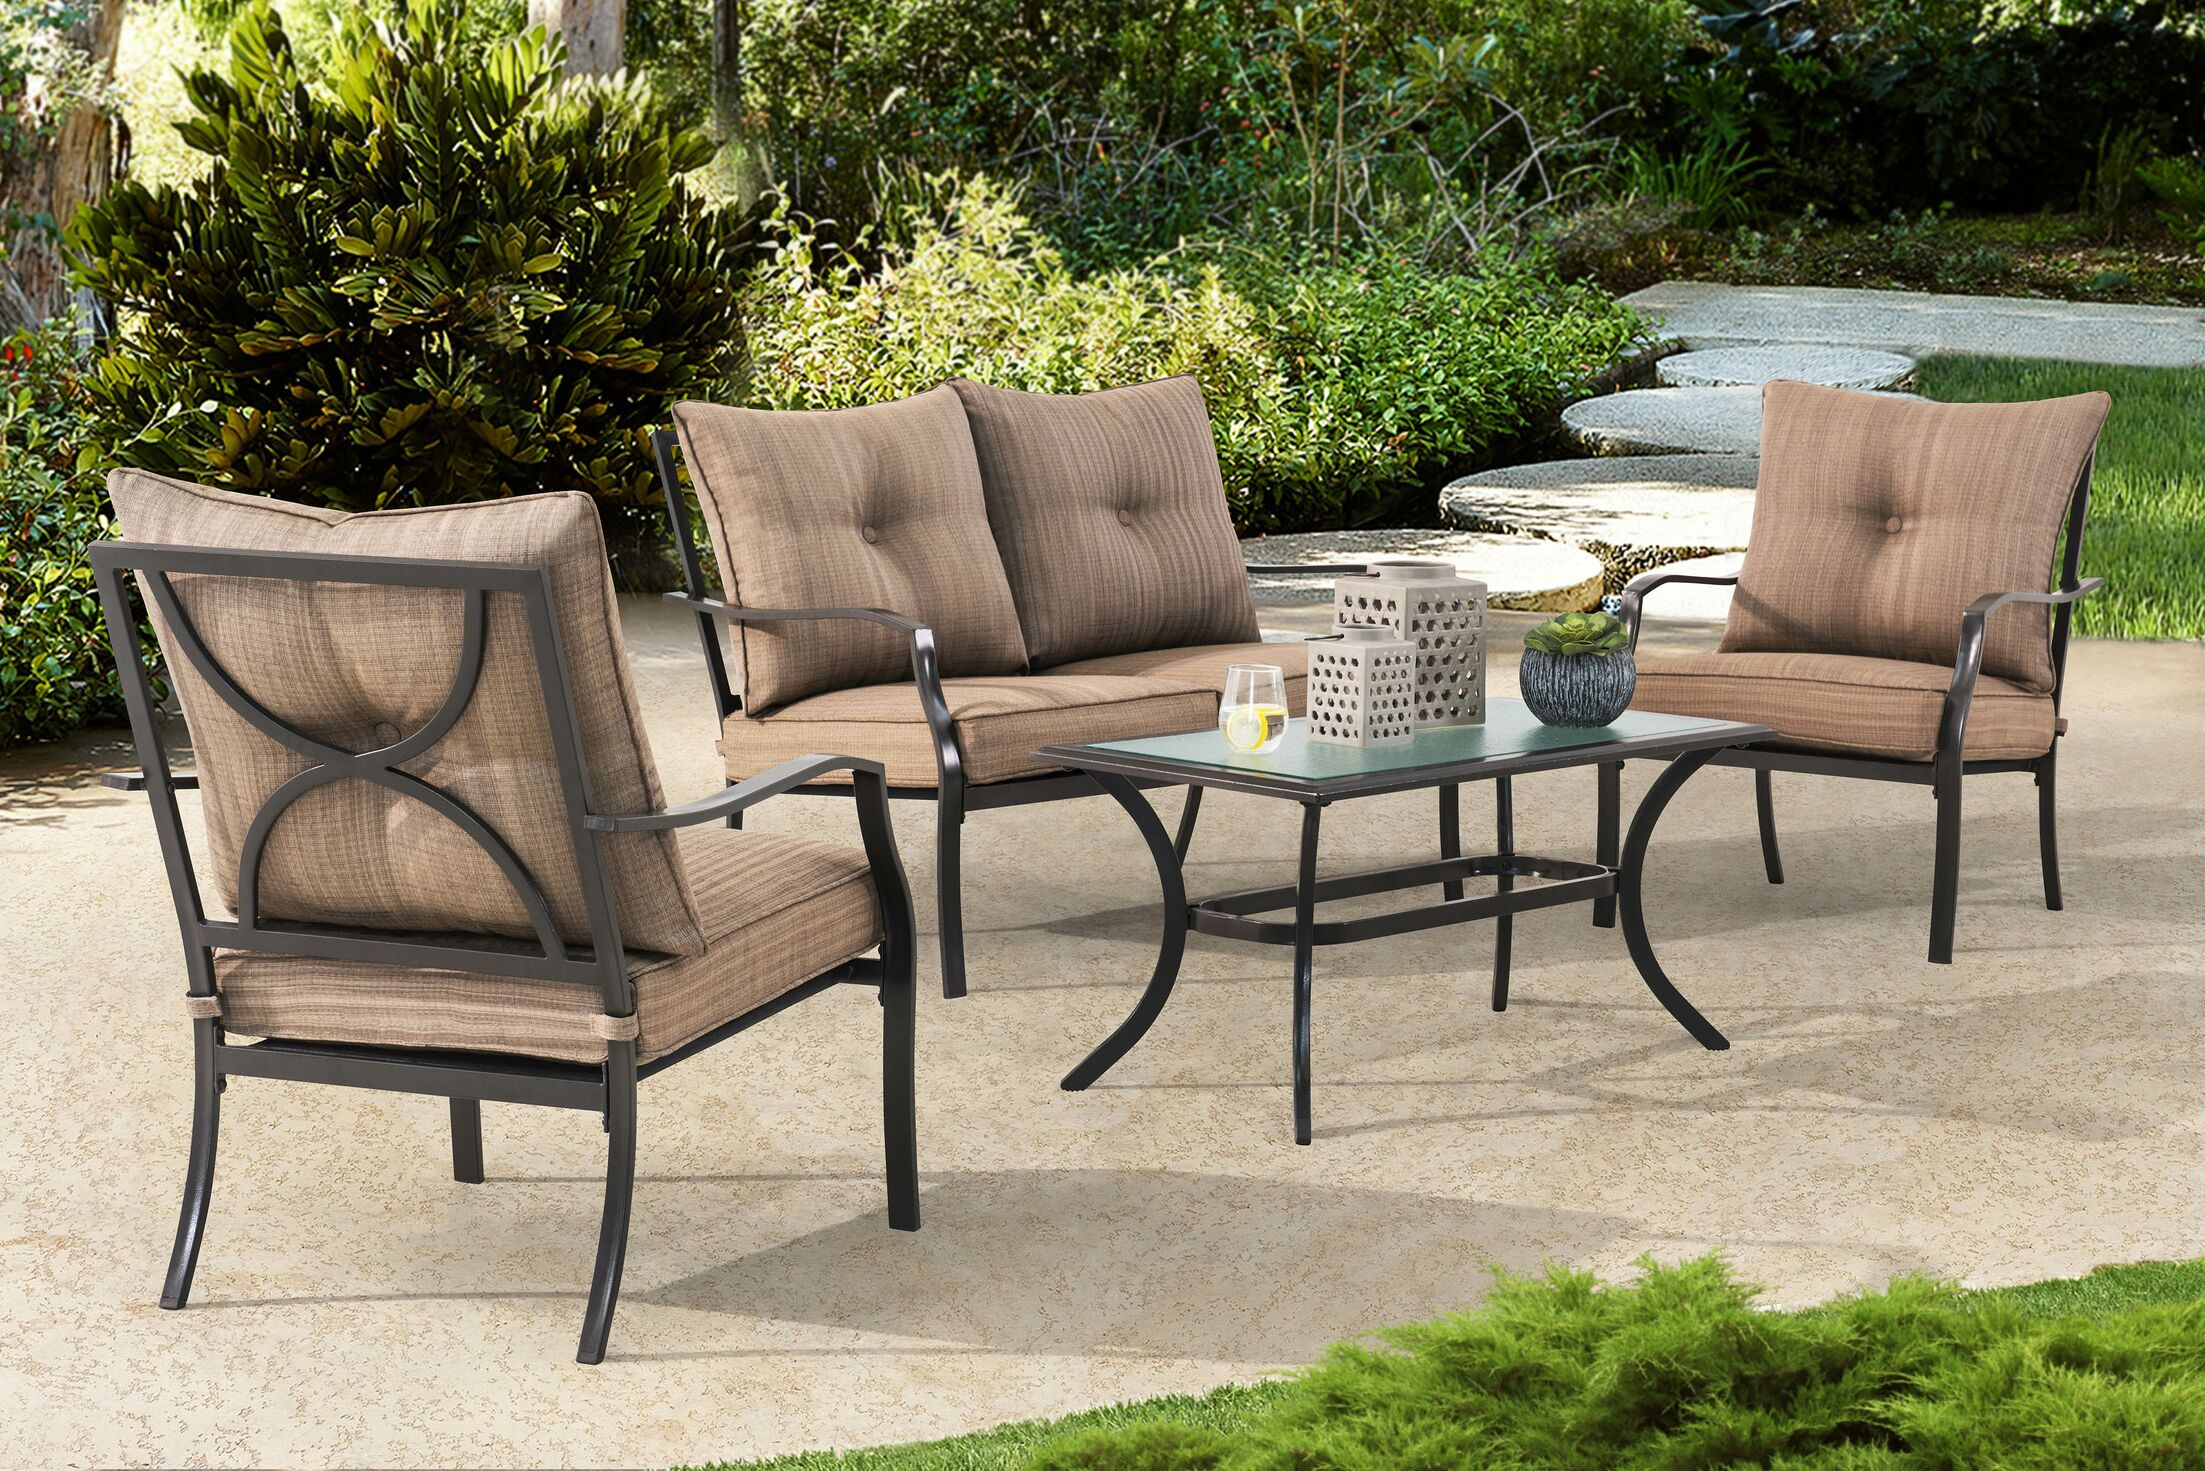 Penright 4 Piece Sofa Set with Cushions